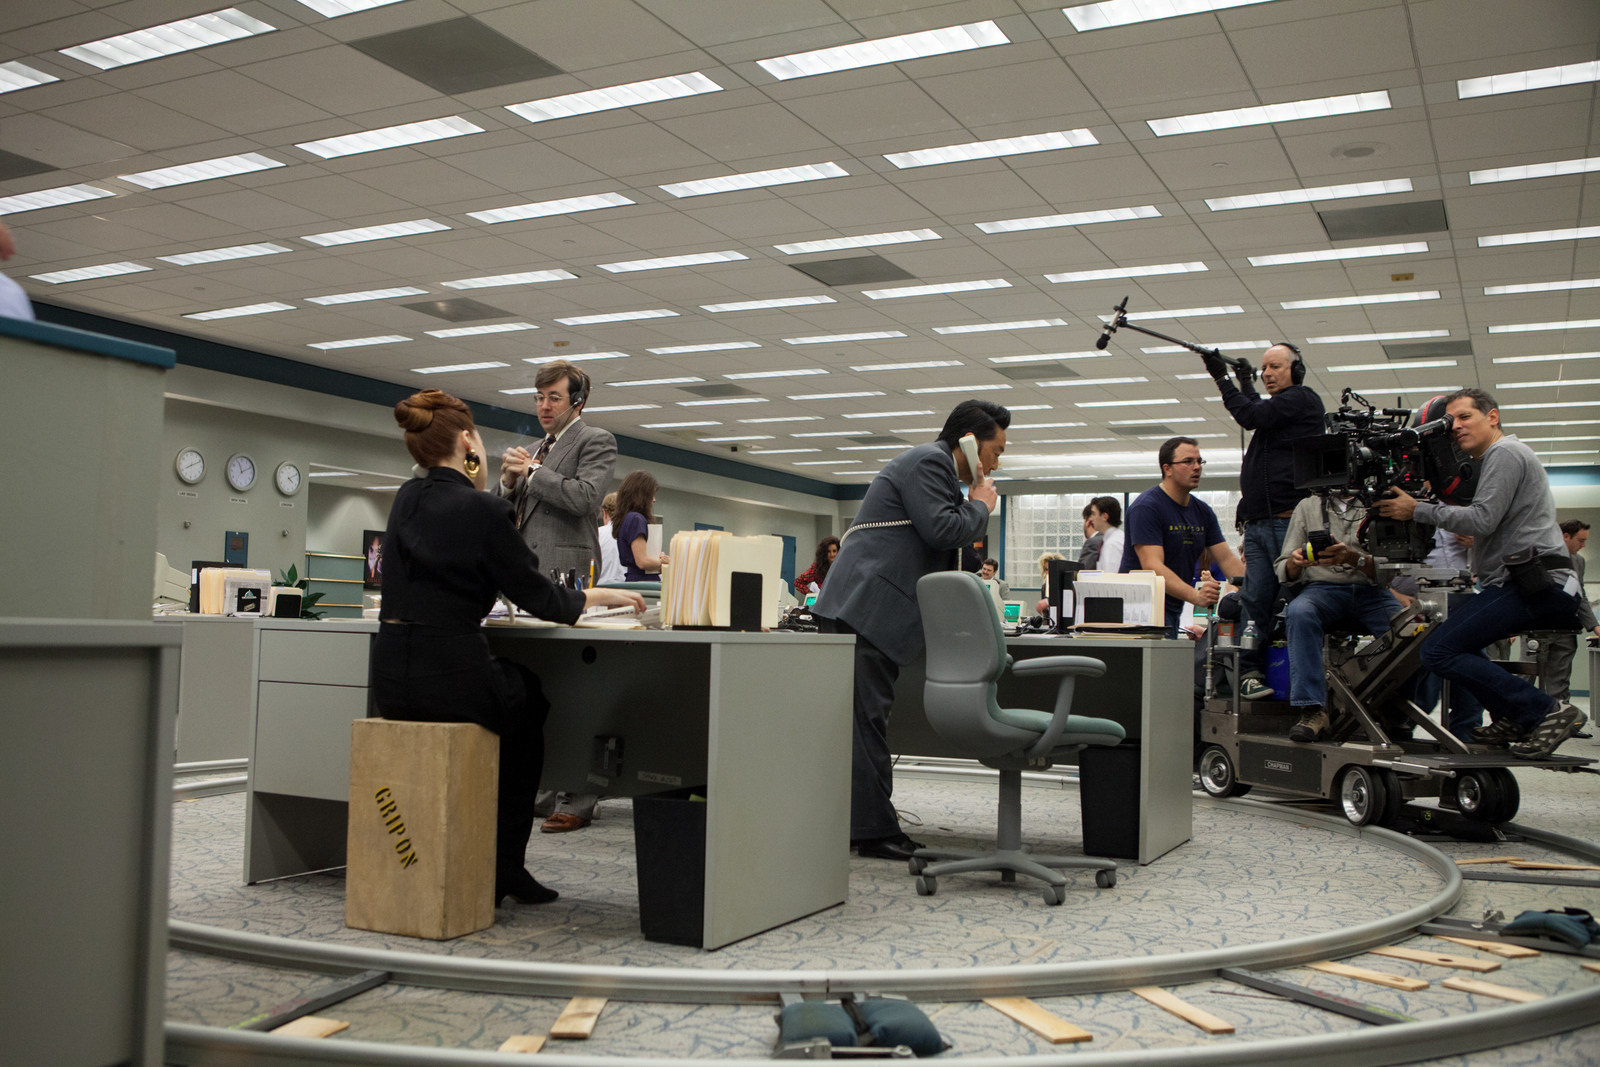 The tracks to create the fast paced 360 degree scene for The Wolf of Wall Street.